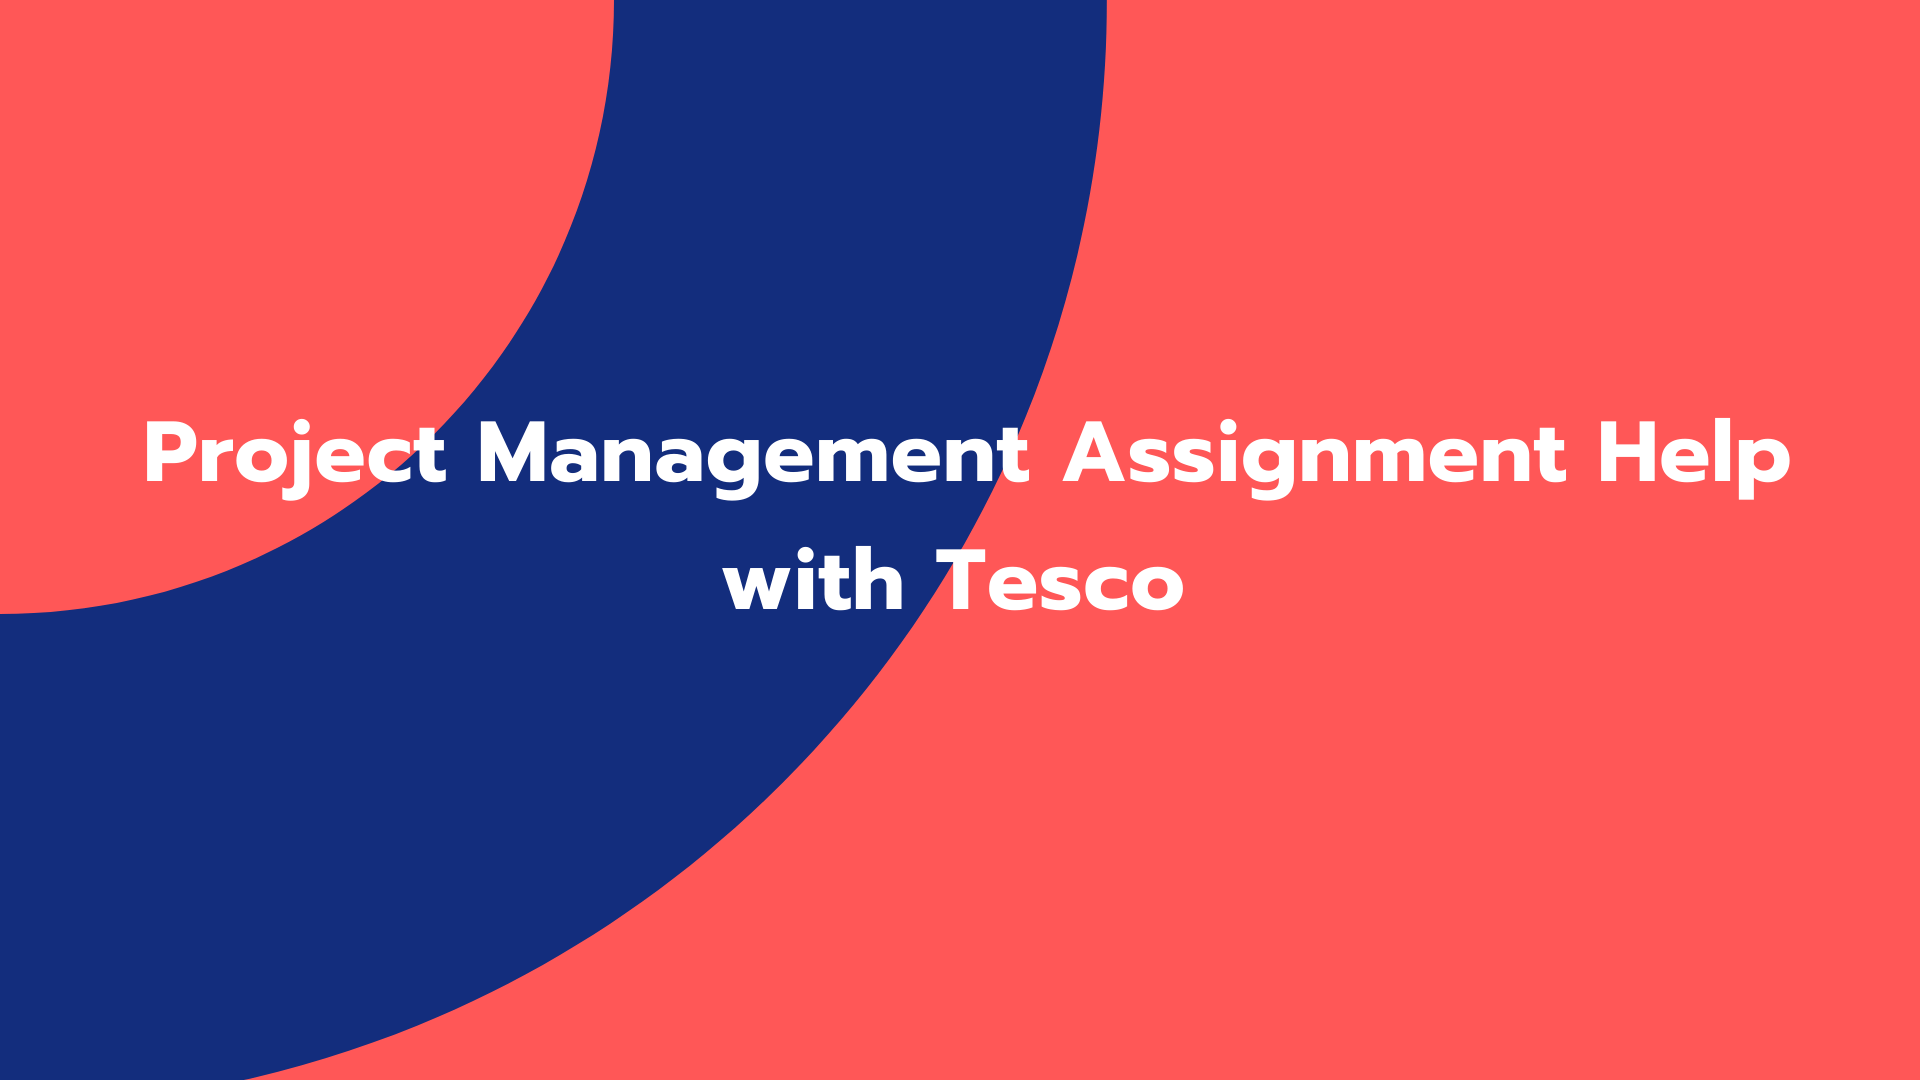 Project Management Assignment Help with Tesco